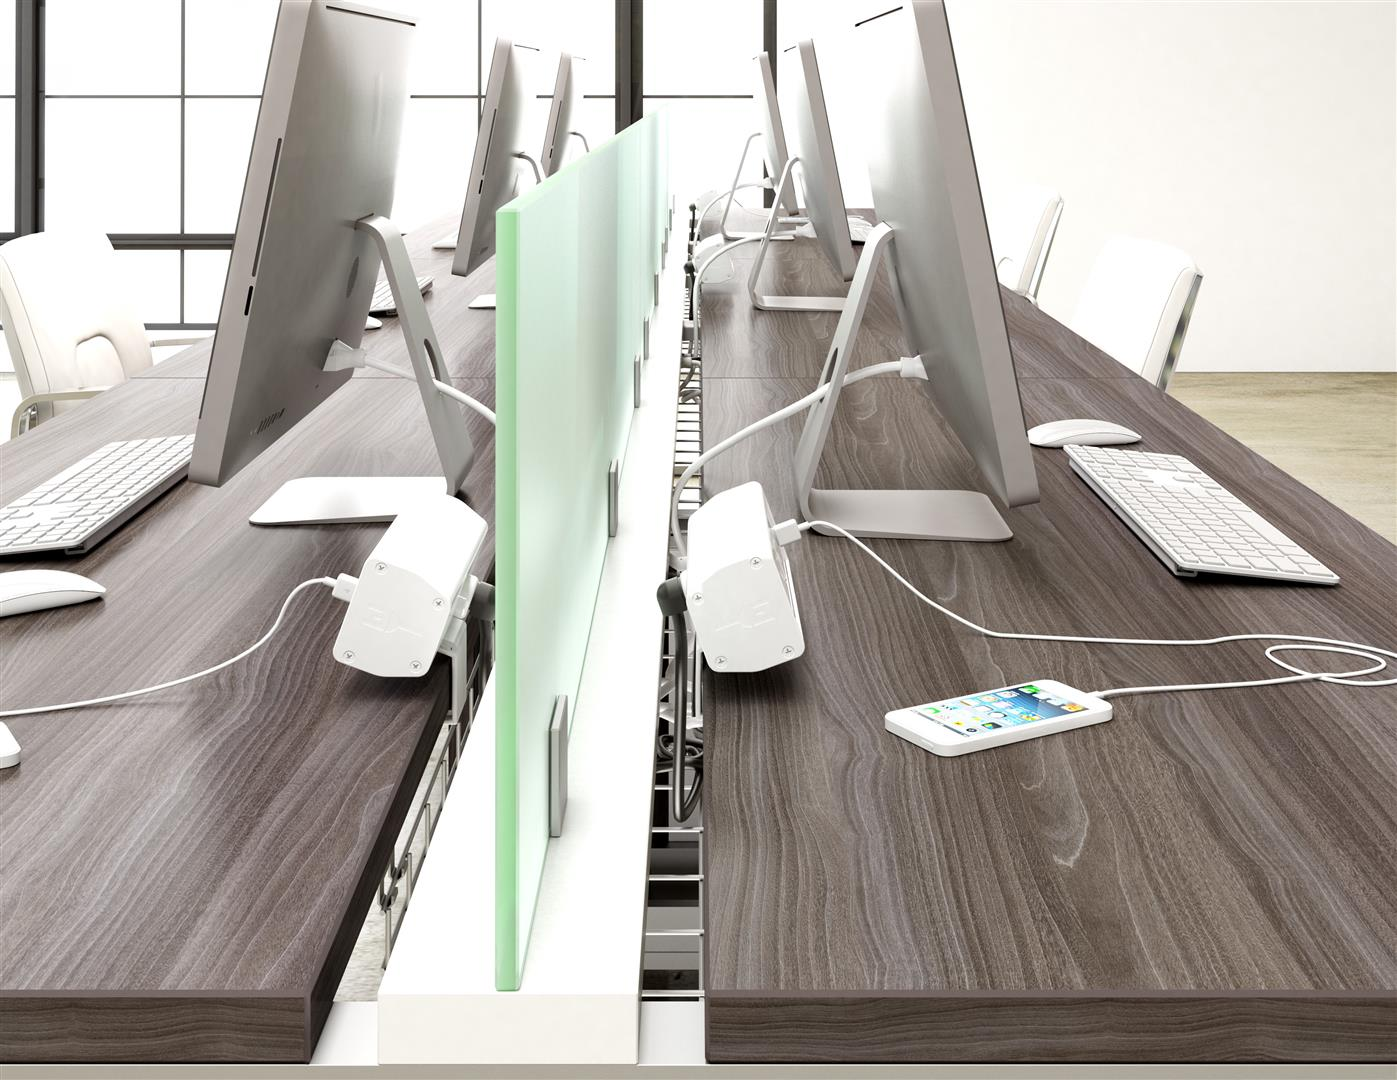 Deskmakers Synapse Benching System Arenson Office Furniture